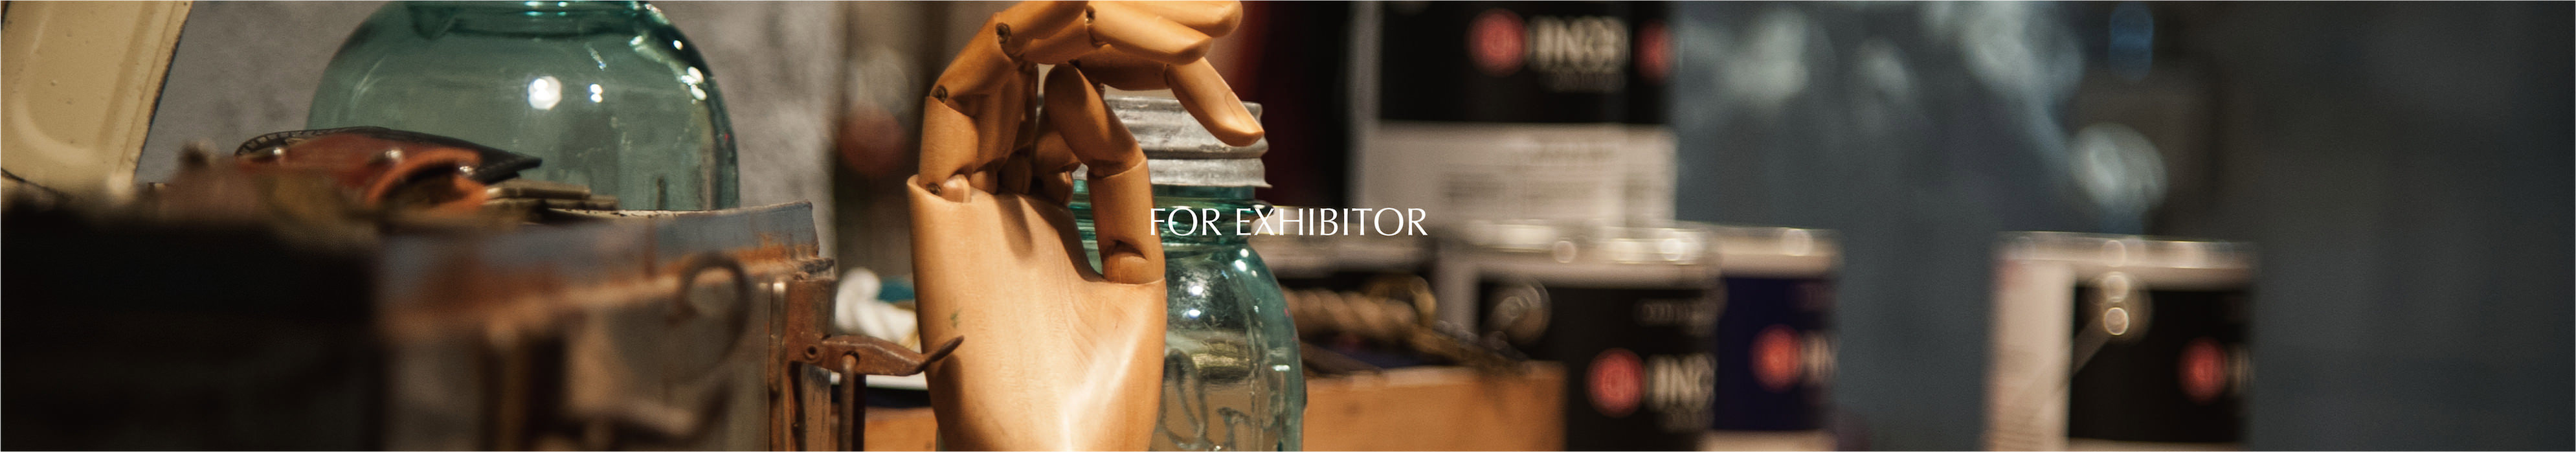 FOR EXHIBITOR